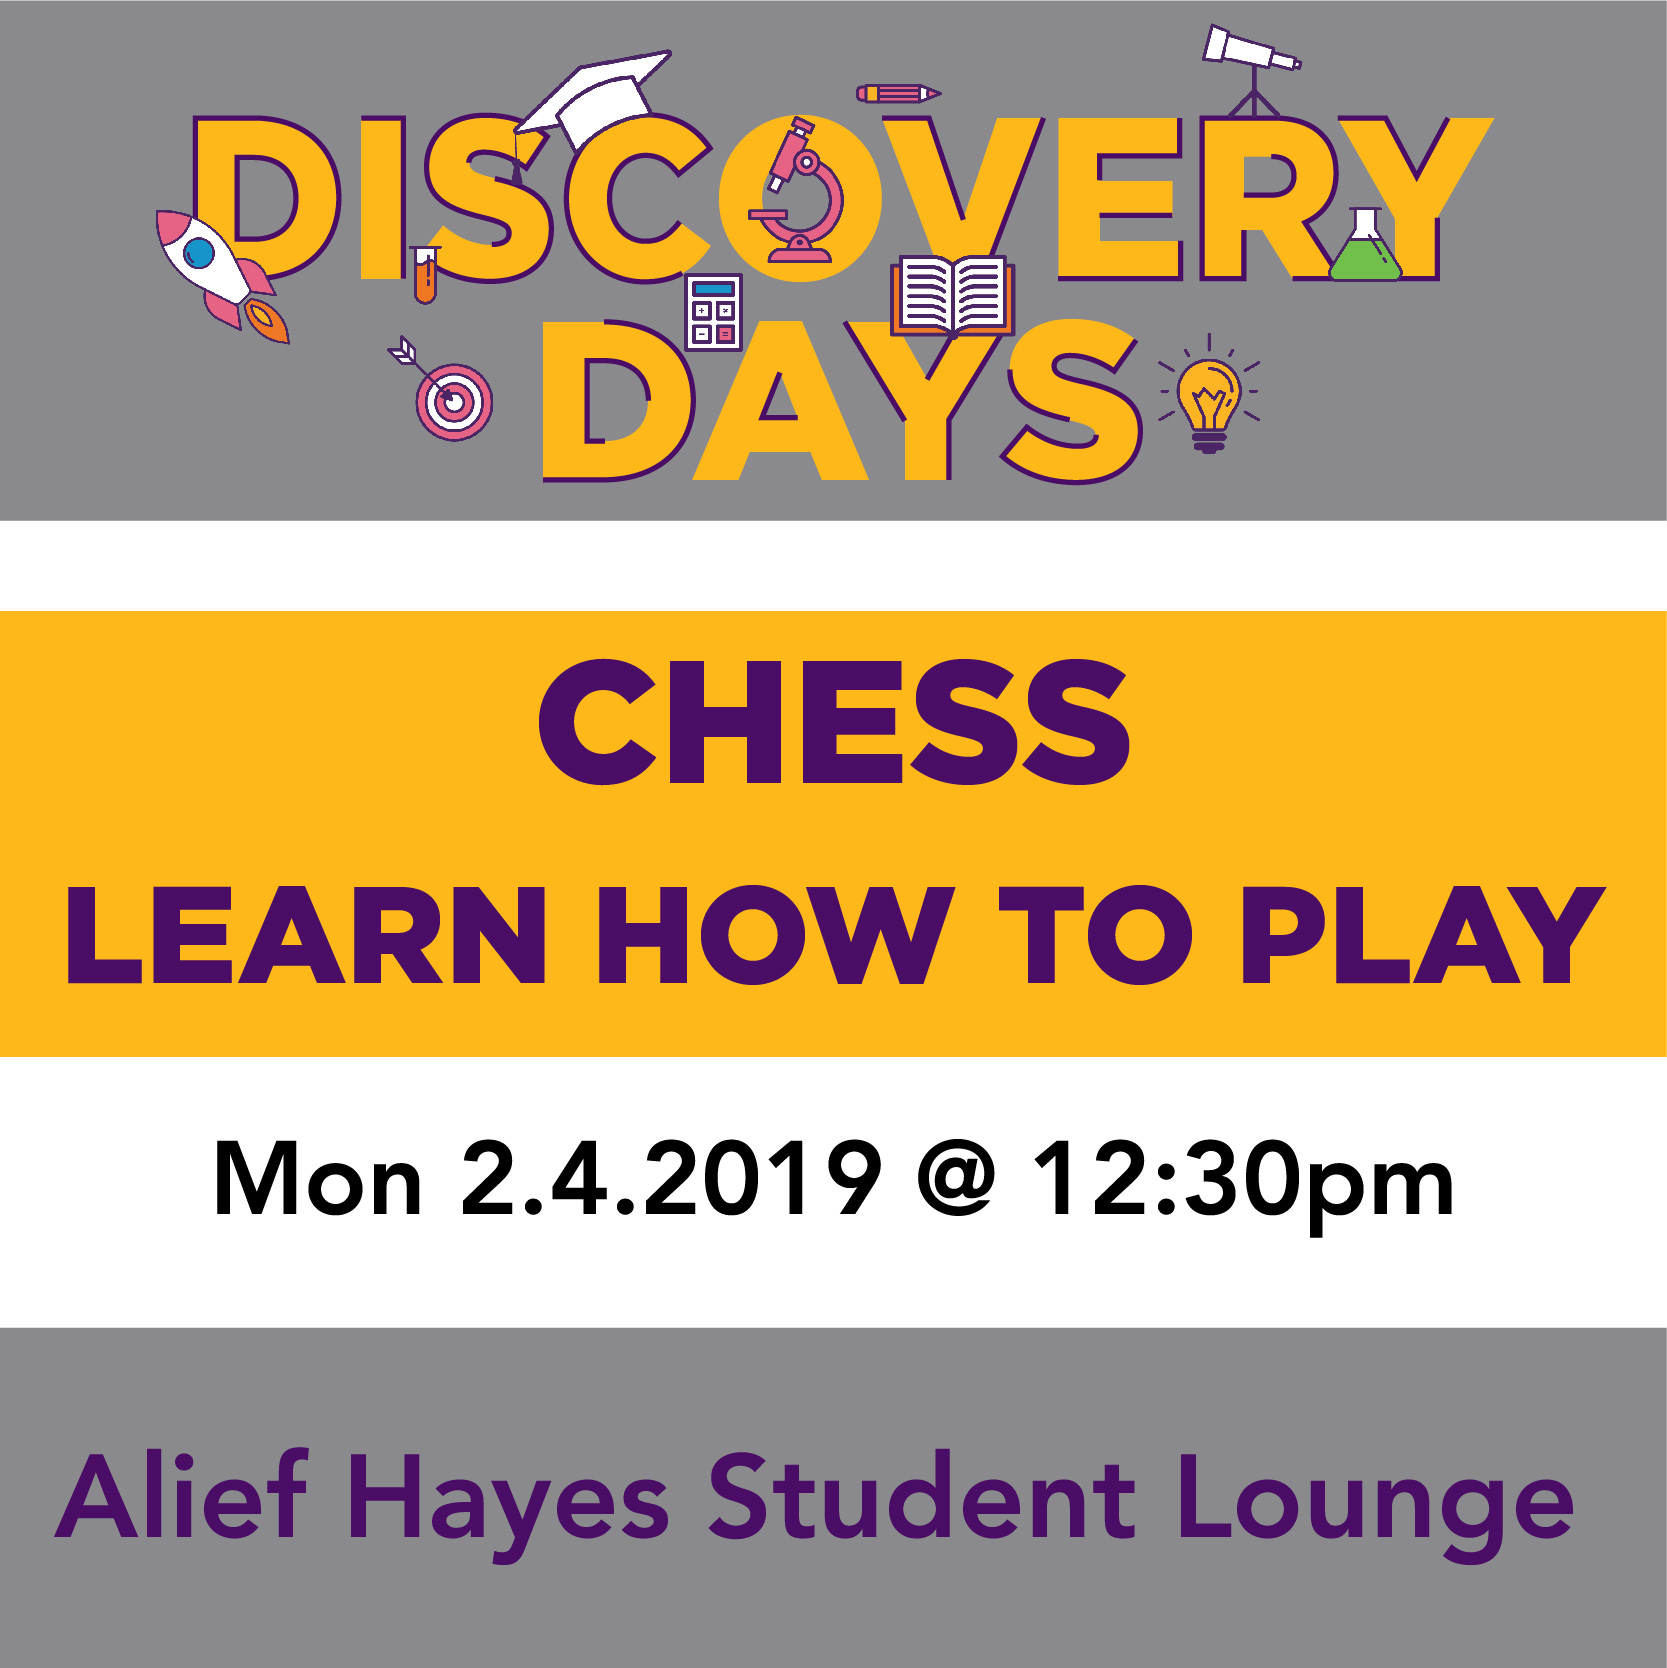 Discovery Days - Chess: Learn How to Play